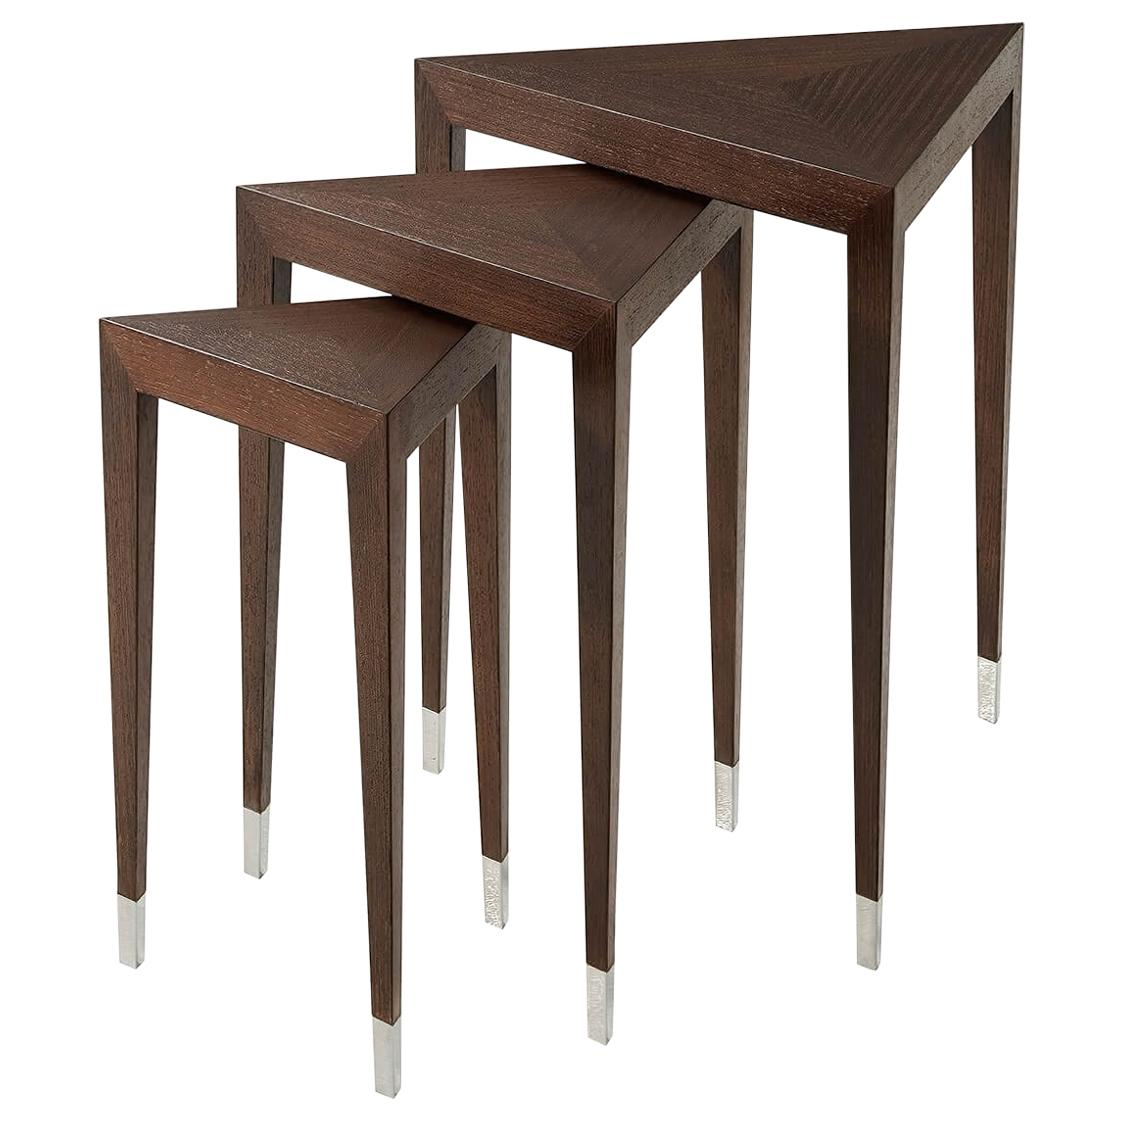 Italian Art Deco Nest of Tables